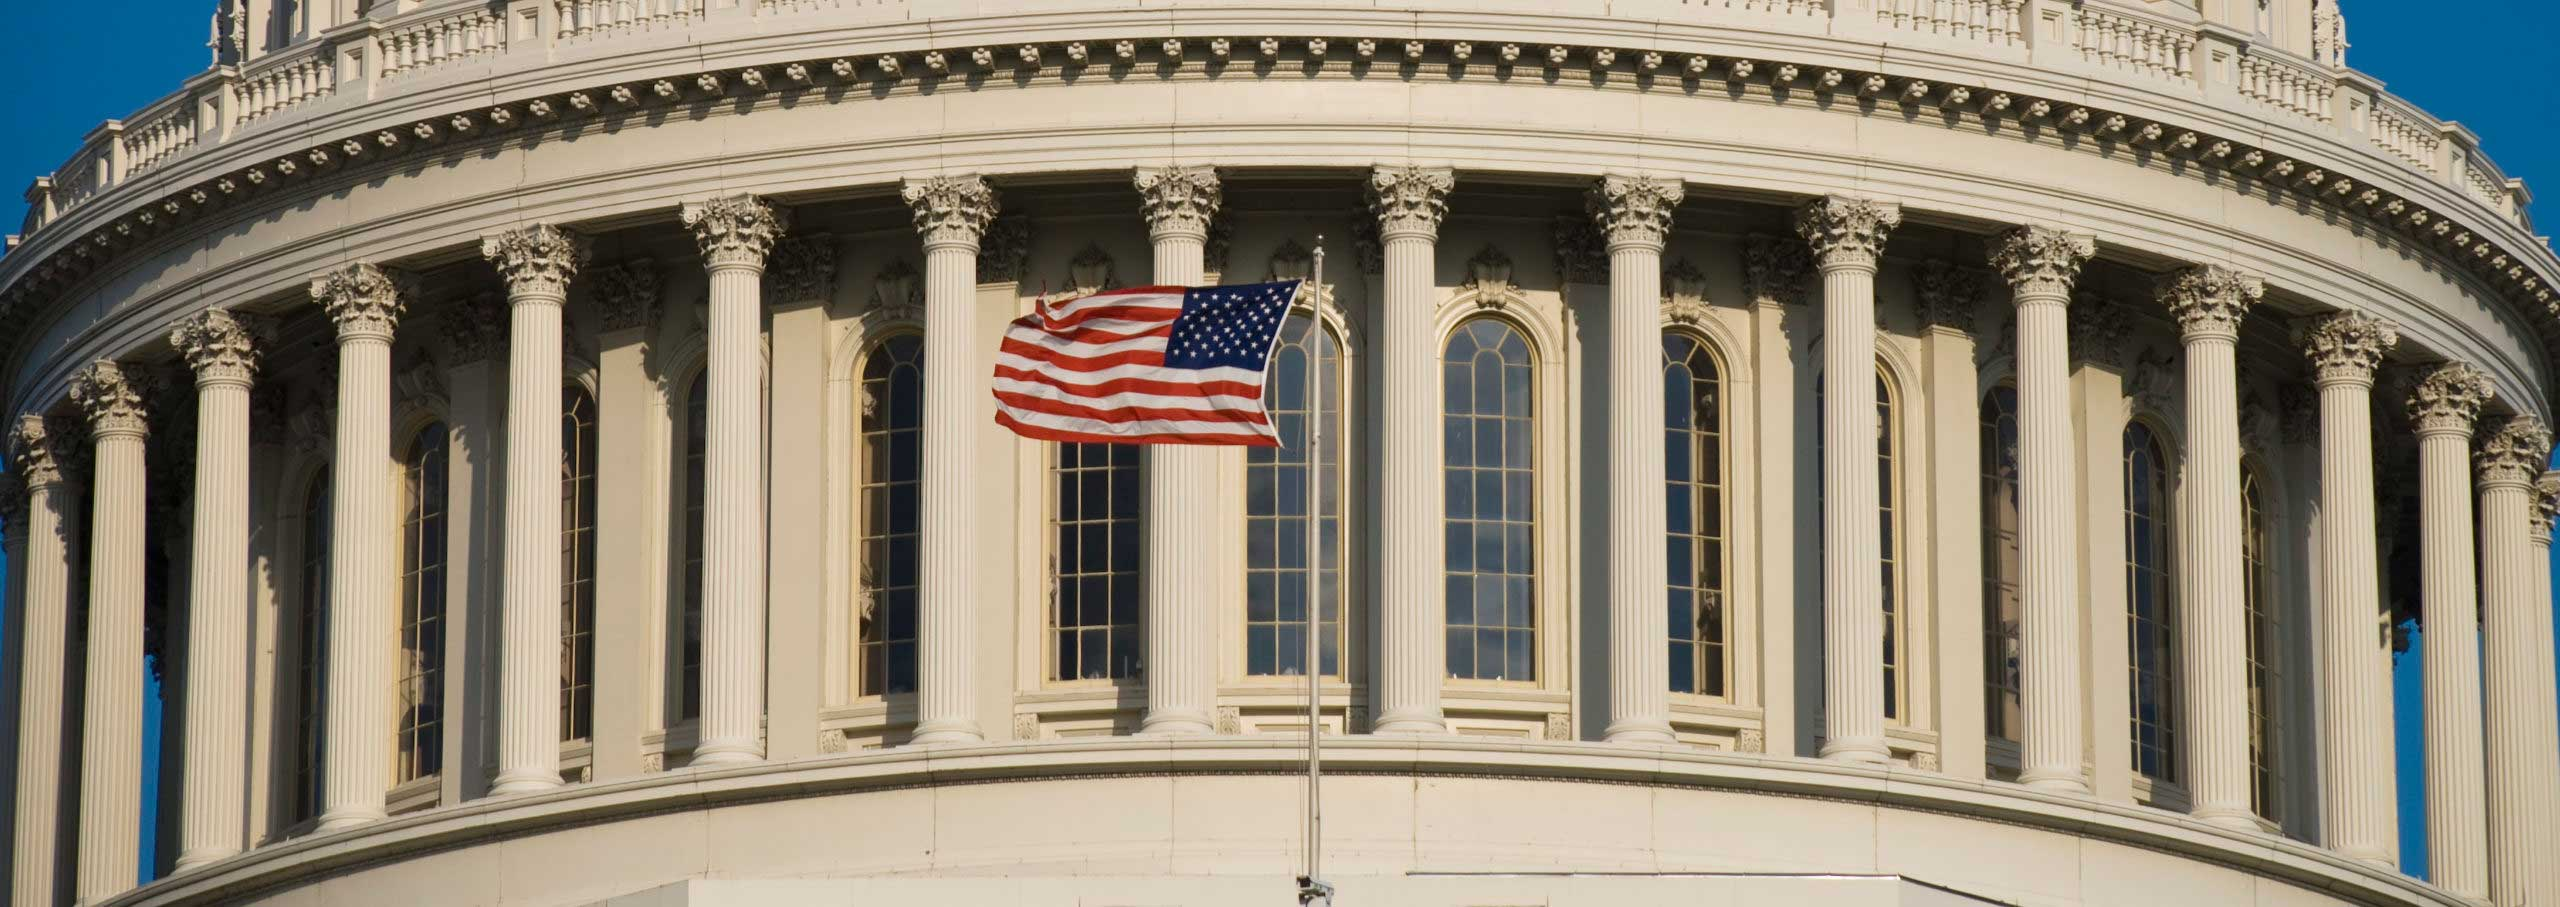 US Flag at Capitol - heroes act